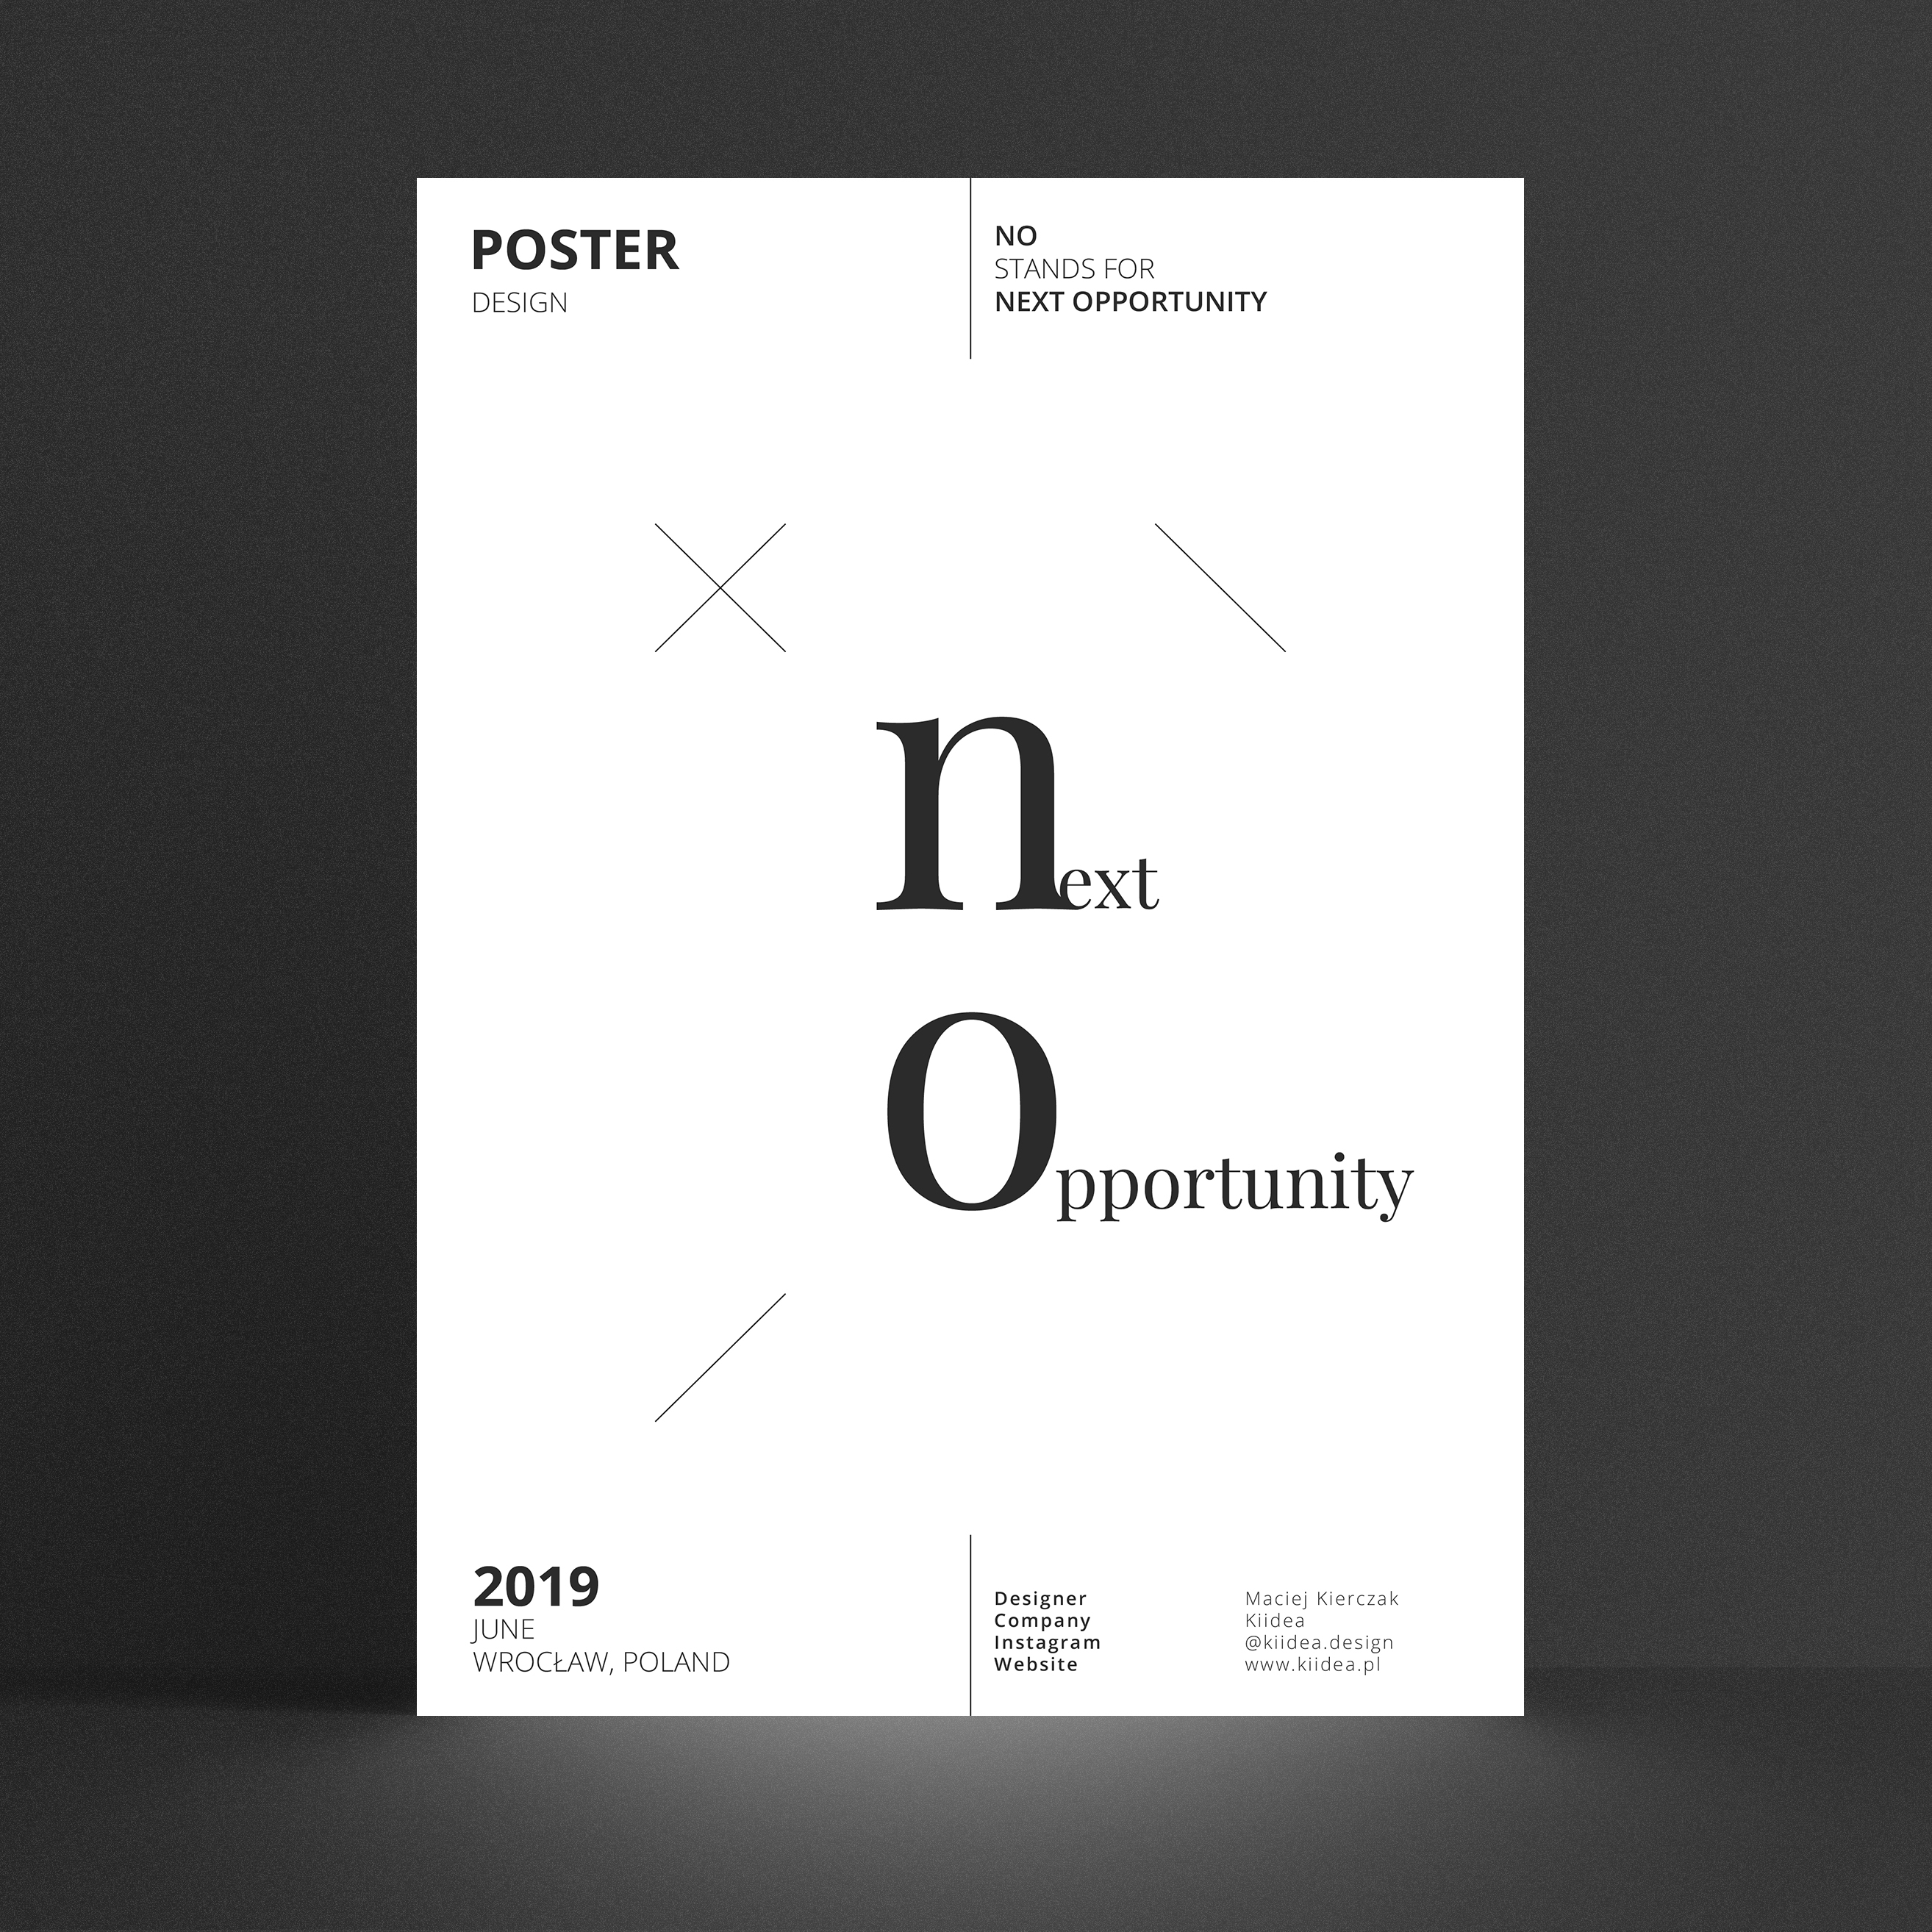 NO – next opportunity